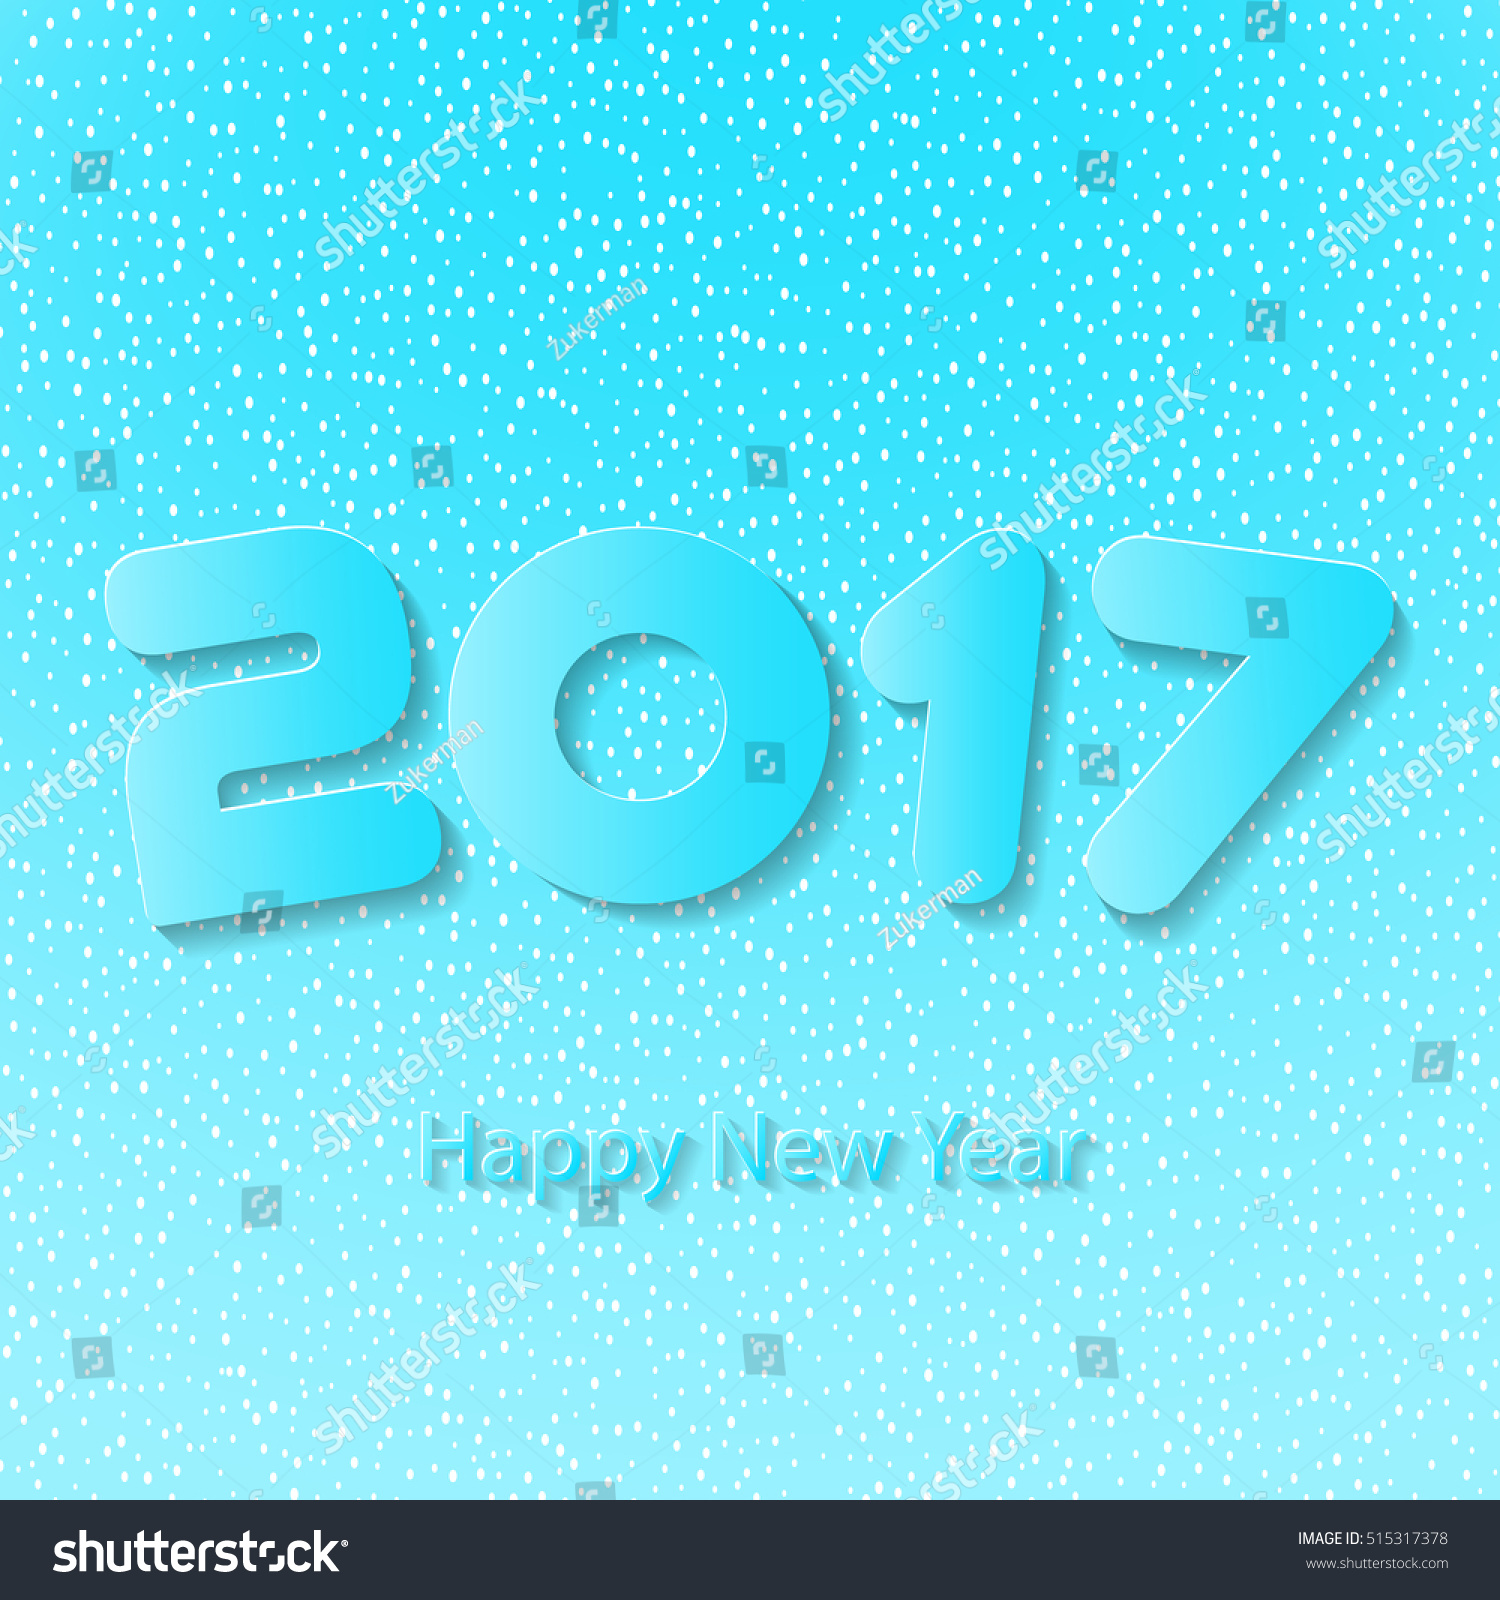 Happy New Year 2017 Element Greeting Stock Vector. Resume Skills For Server. Resume Format For Zoho. Curriculum Vitae Europeo Trattamento Dati Personali. Cv Template Word School Leaver. Resume Writing Association. Cover Letter Examples That Stand Out. Letterhead Paper Type. Resume Builder Novo